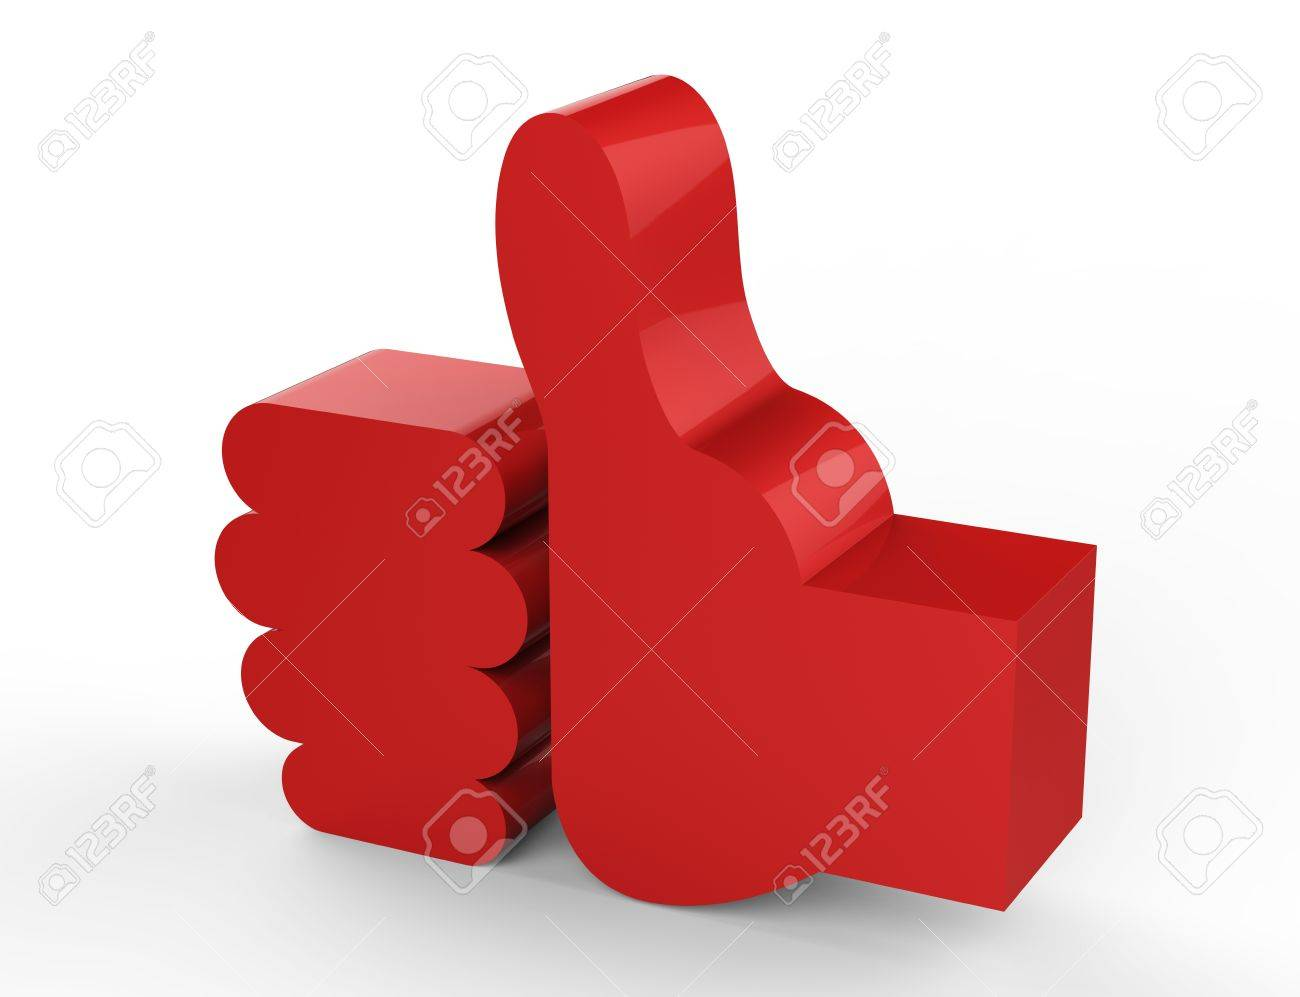 like red 3D Stock Photo - 18101499